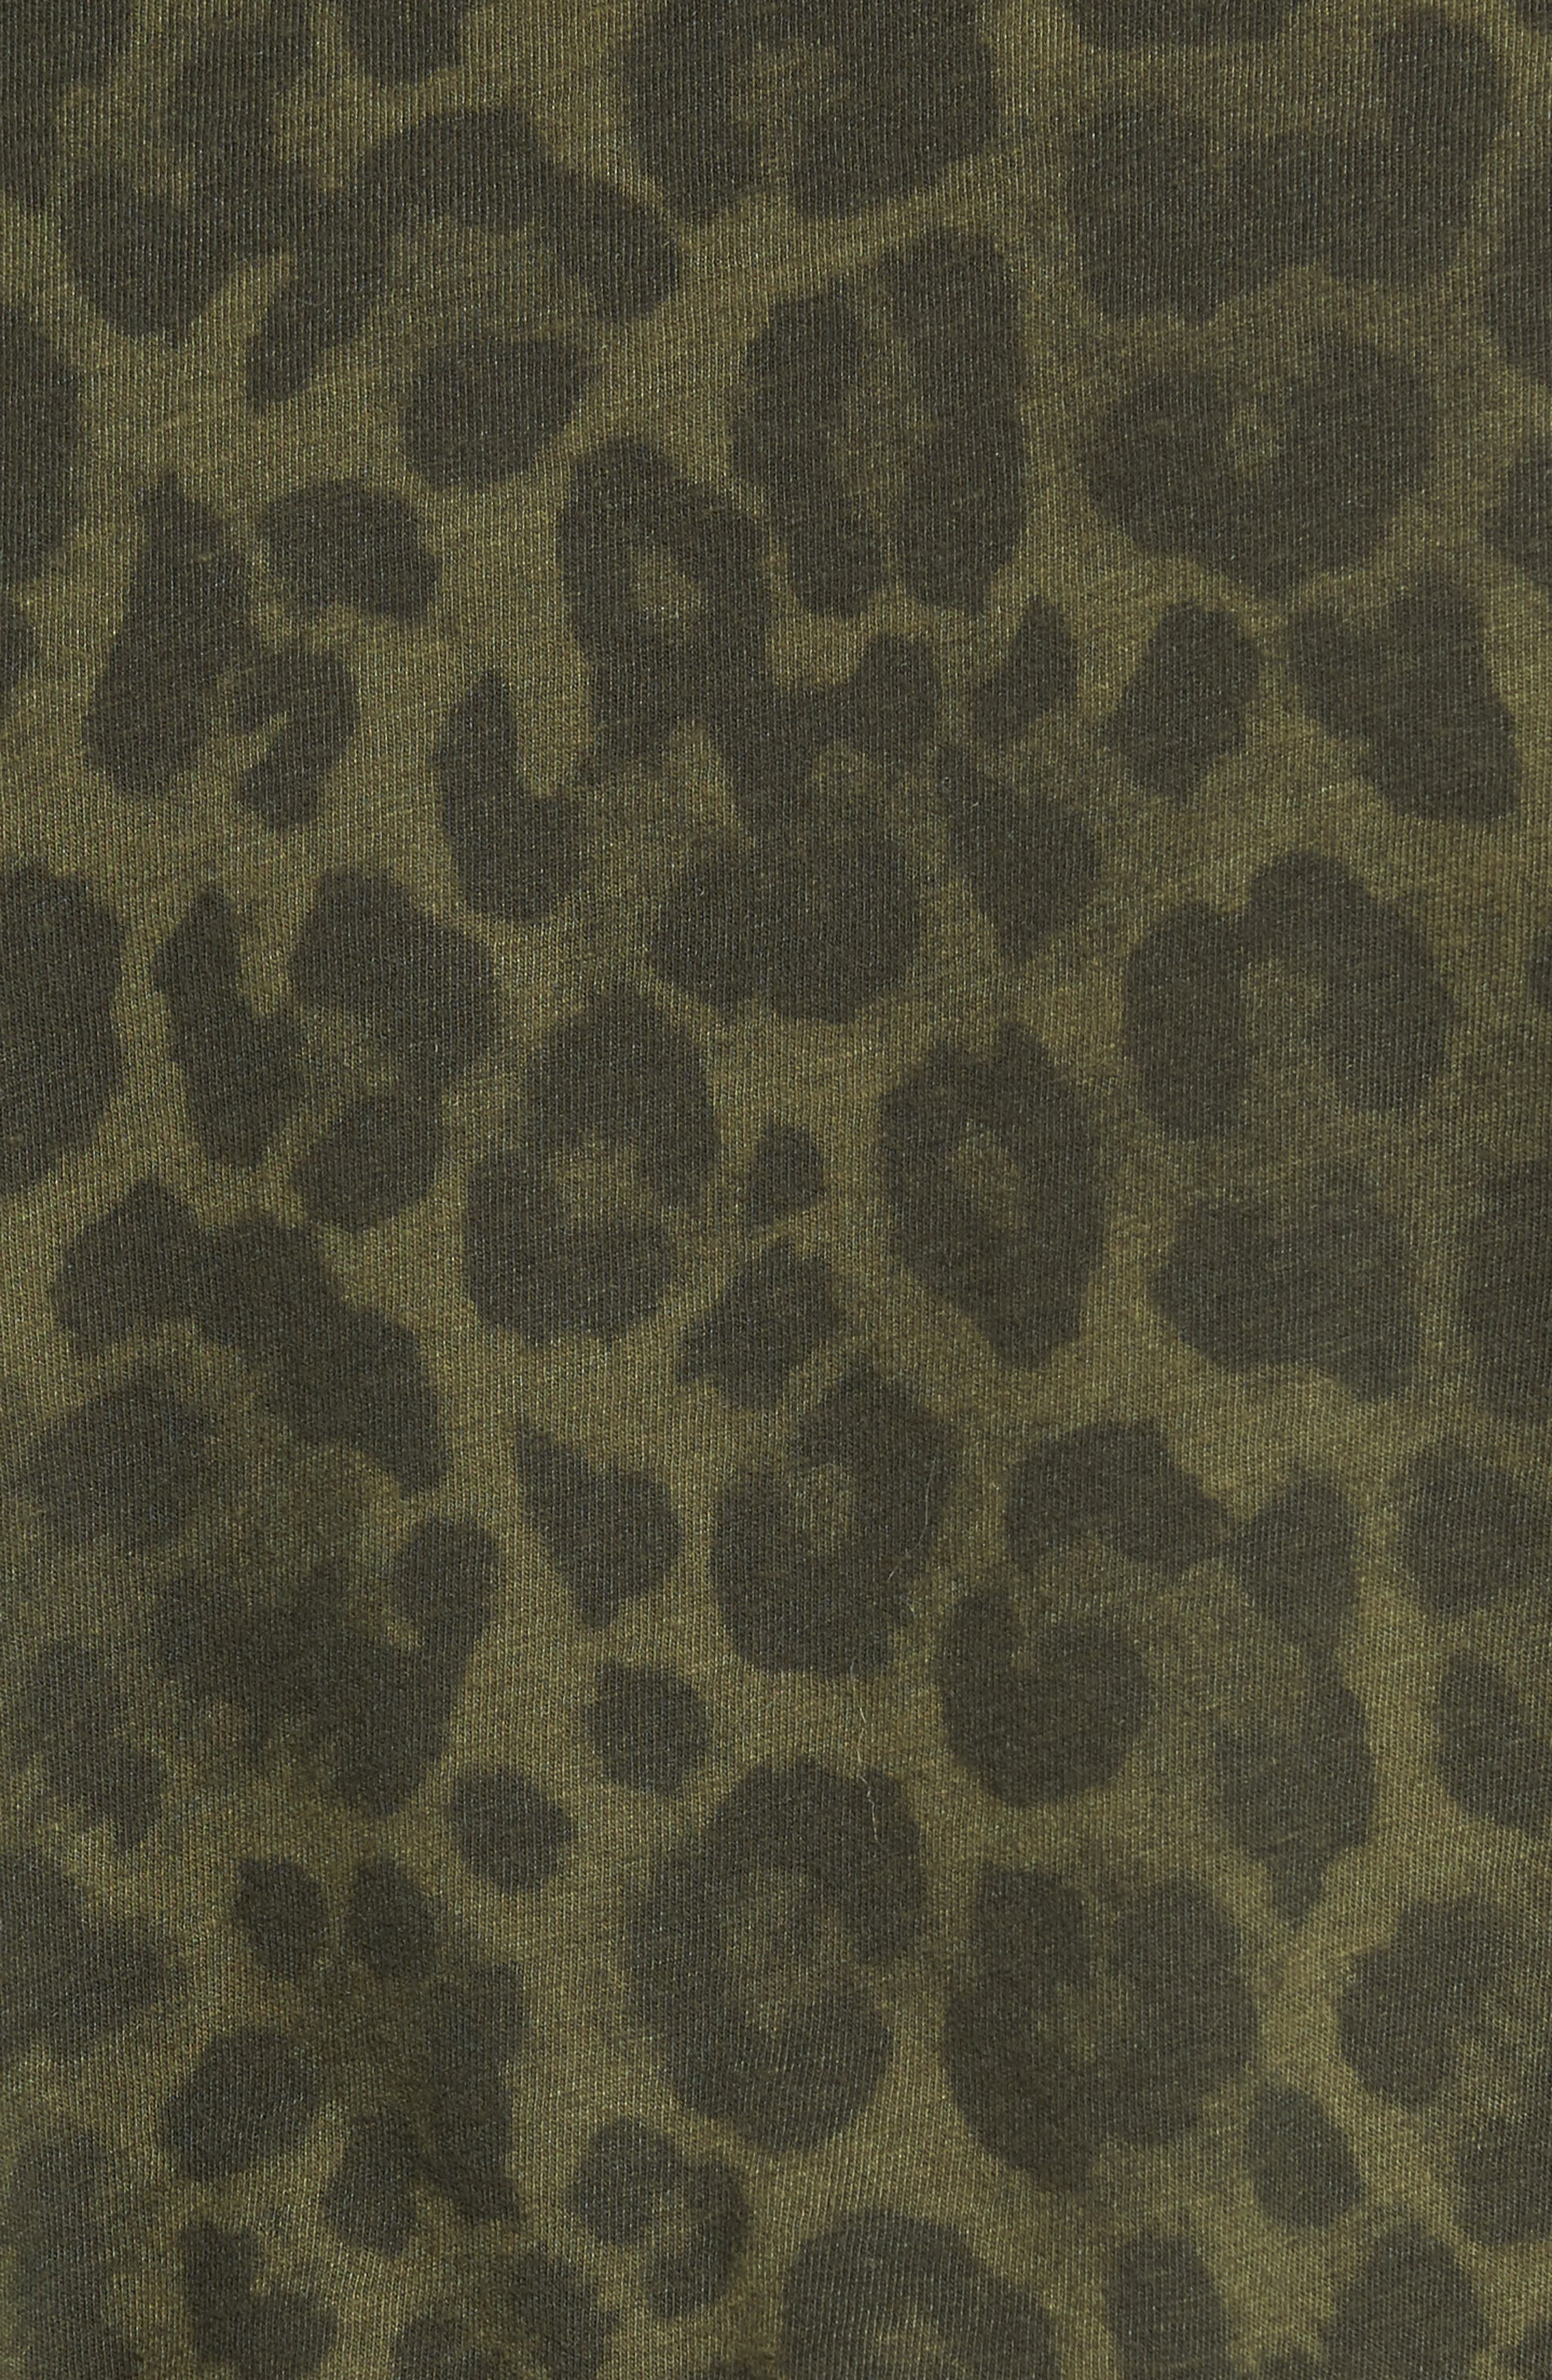 Leopard Print Tee,                             Alternate thumbnail 5, color,                             Olive